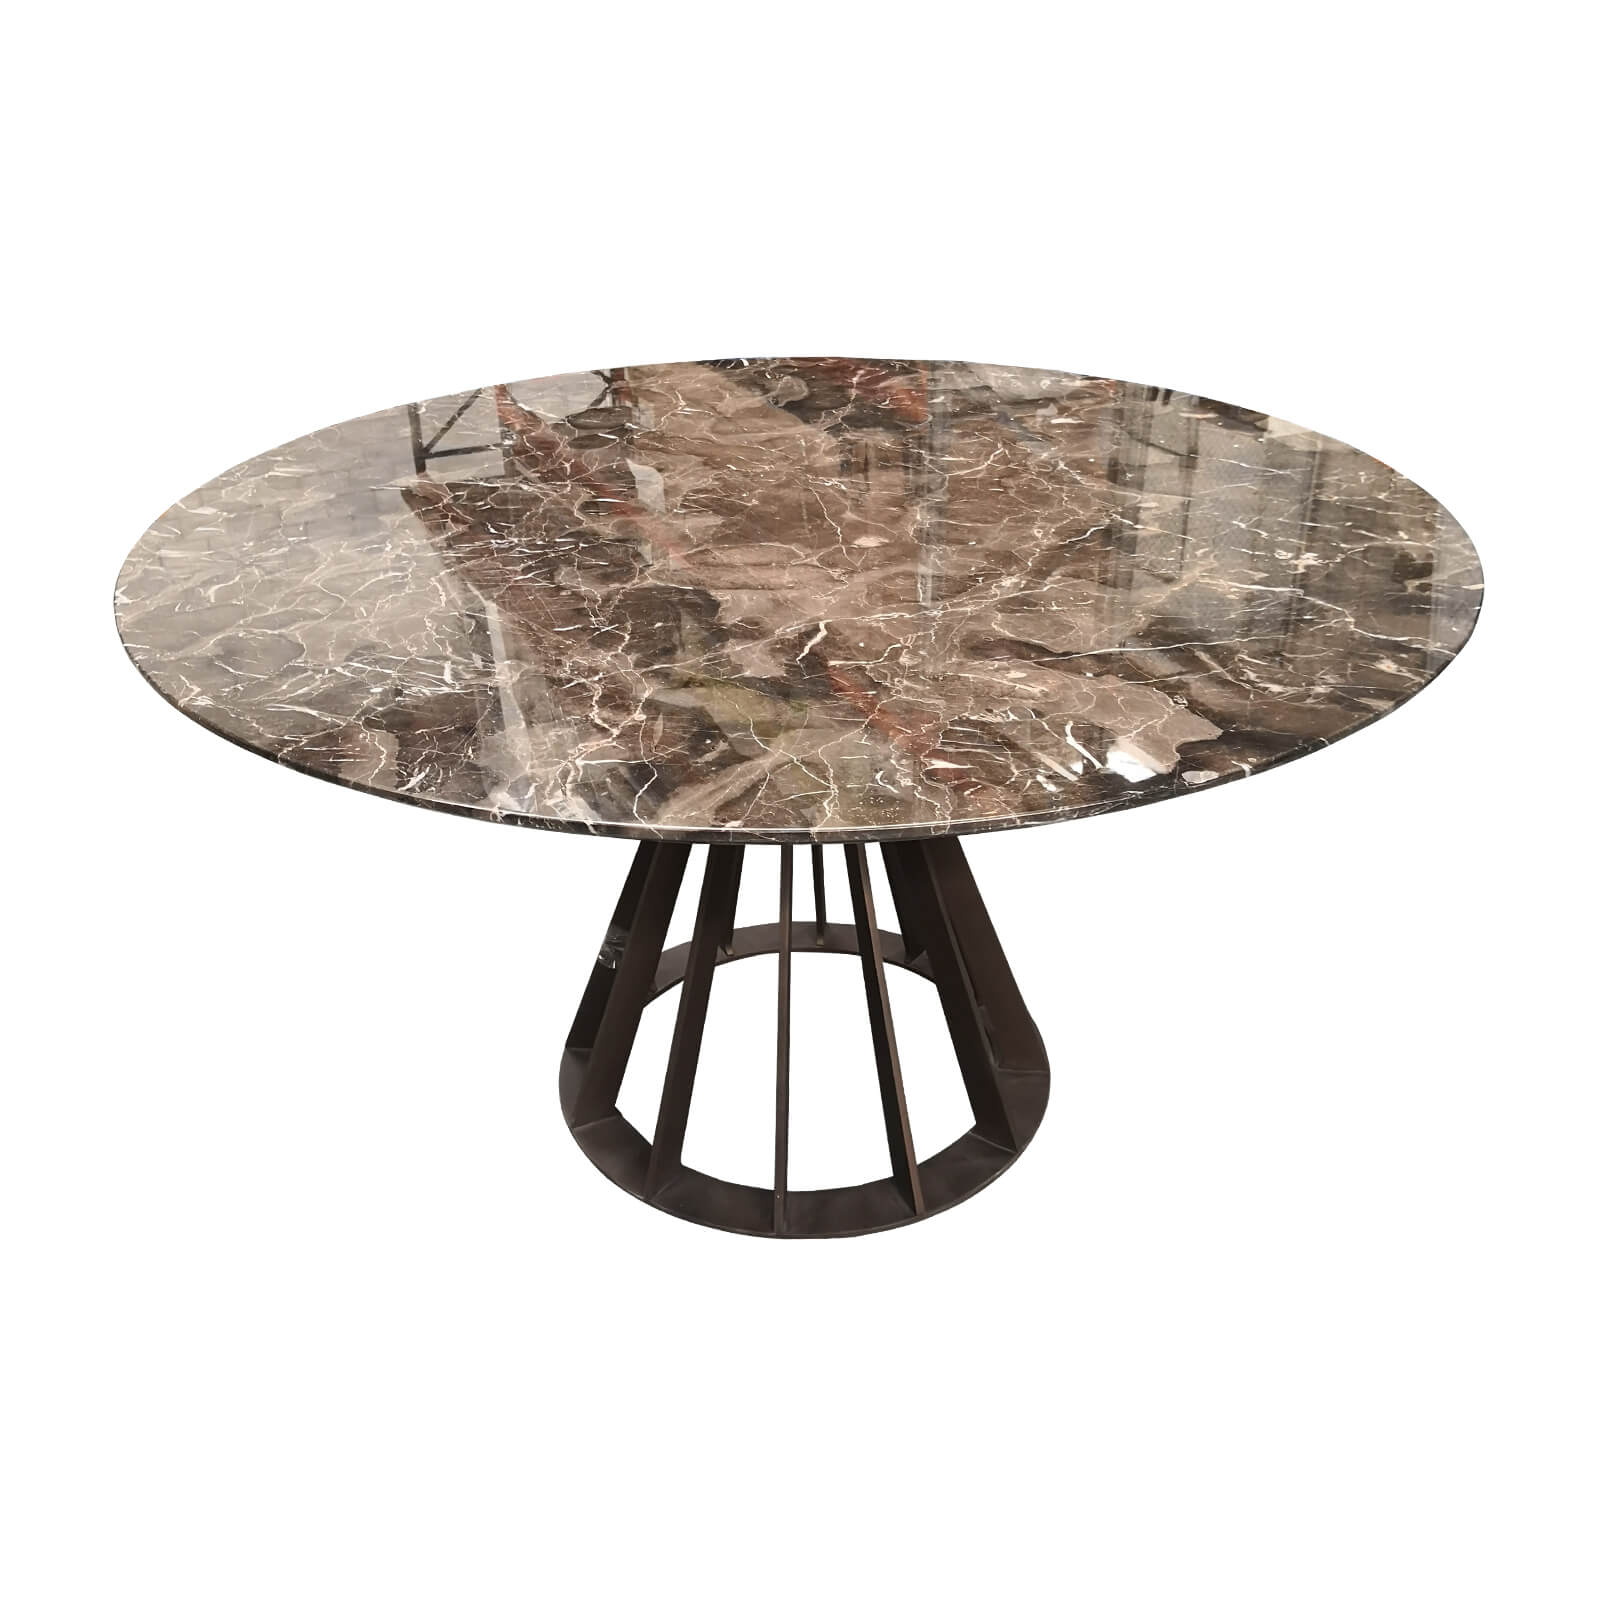 two design lovers marble dining table